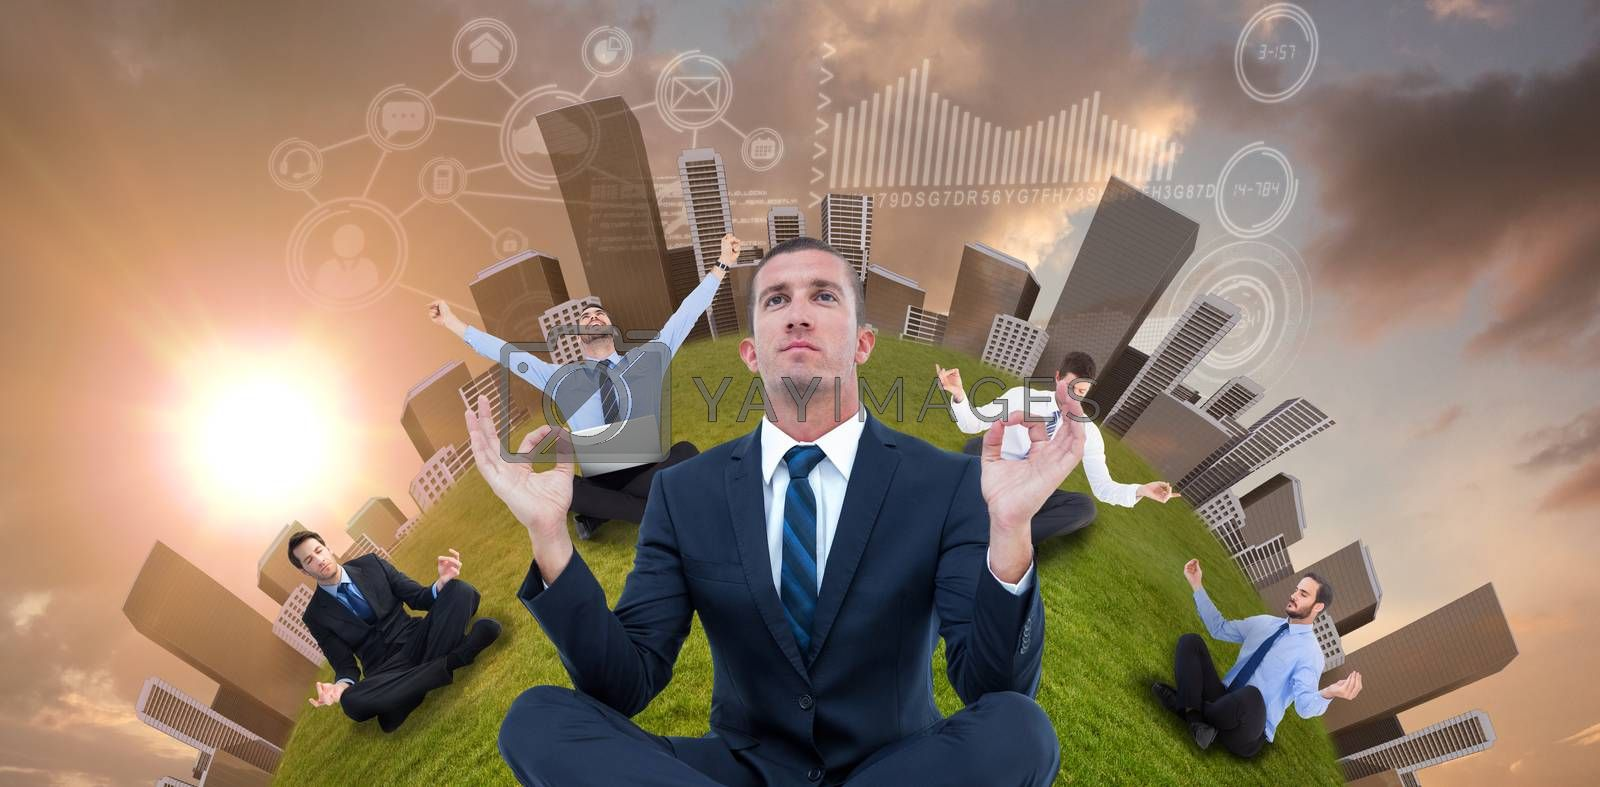 Businessman sitting cross-legged against blue and orange sky with clouds